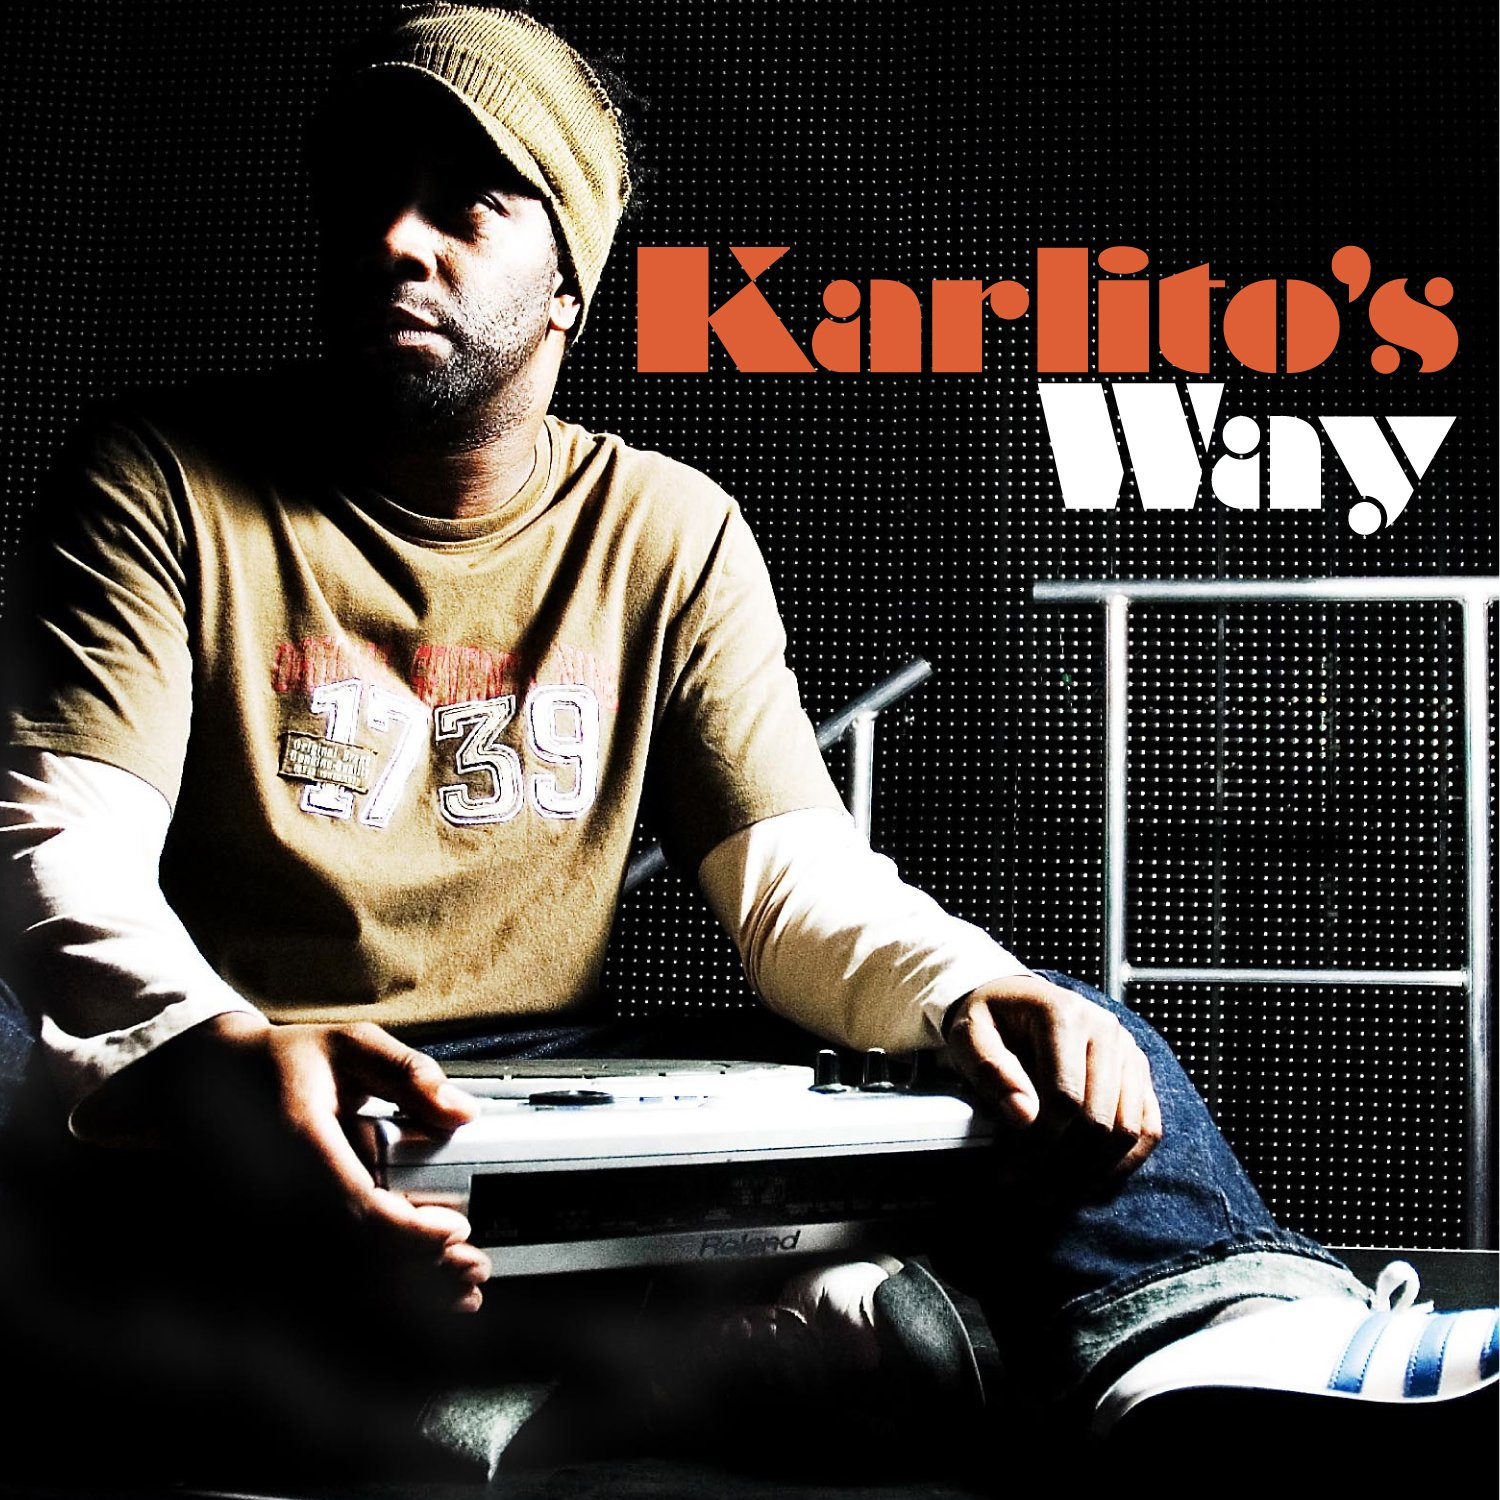 Karlito - Karlitos Way (United Kingdom - Import)